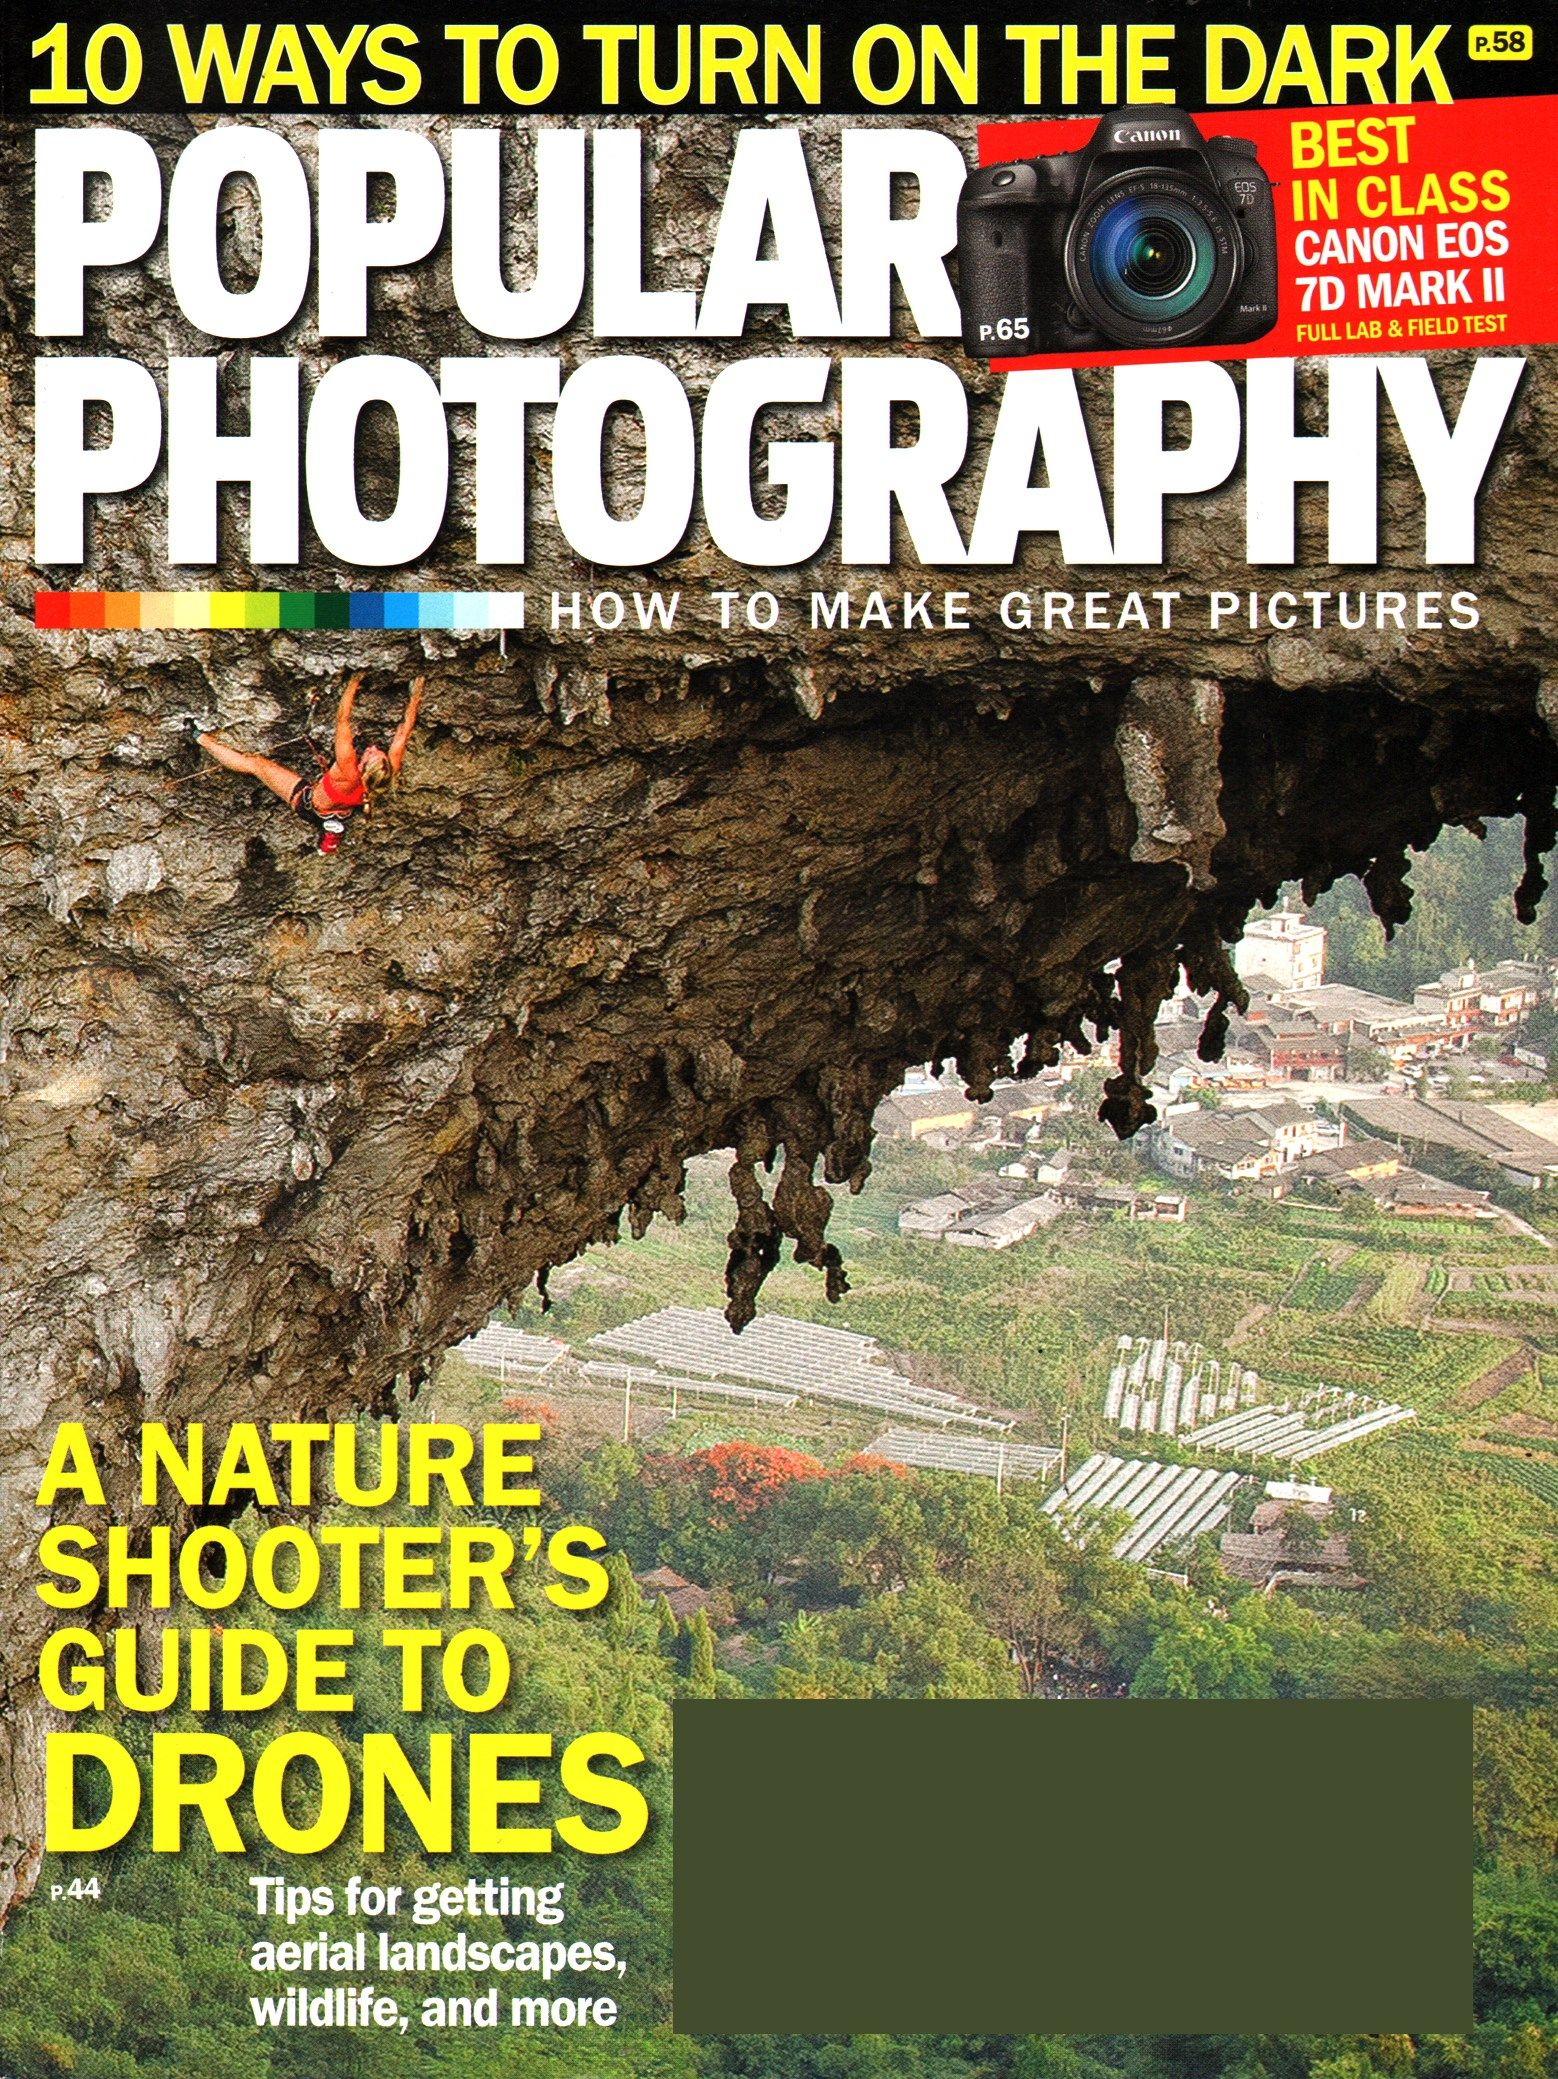 Popular Photography Cover For 2/1/2015